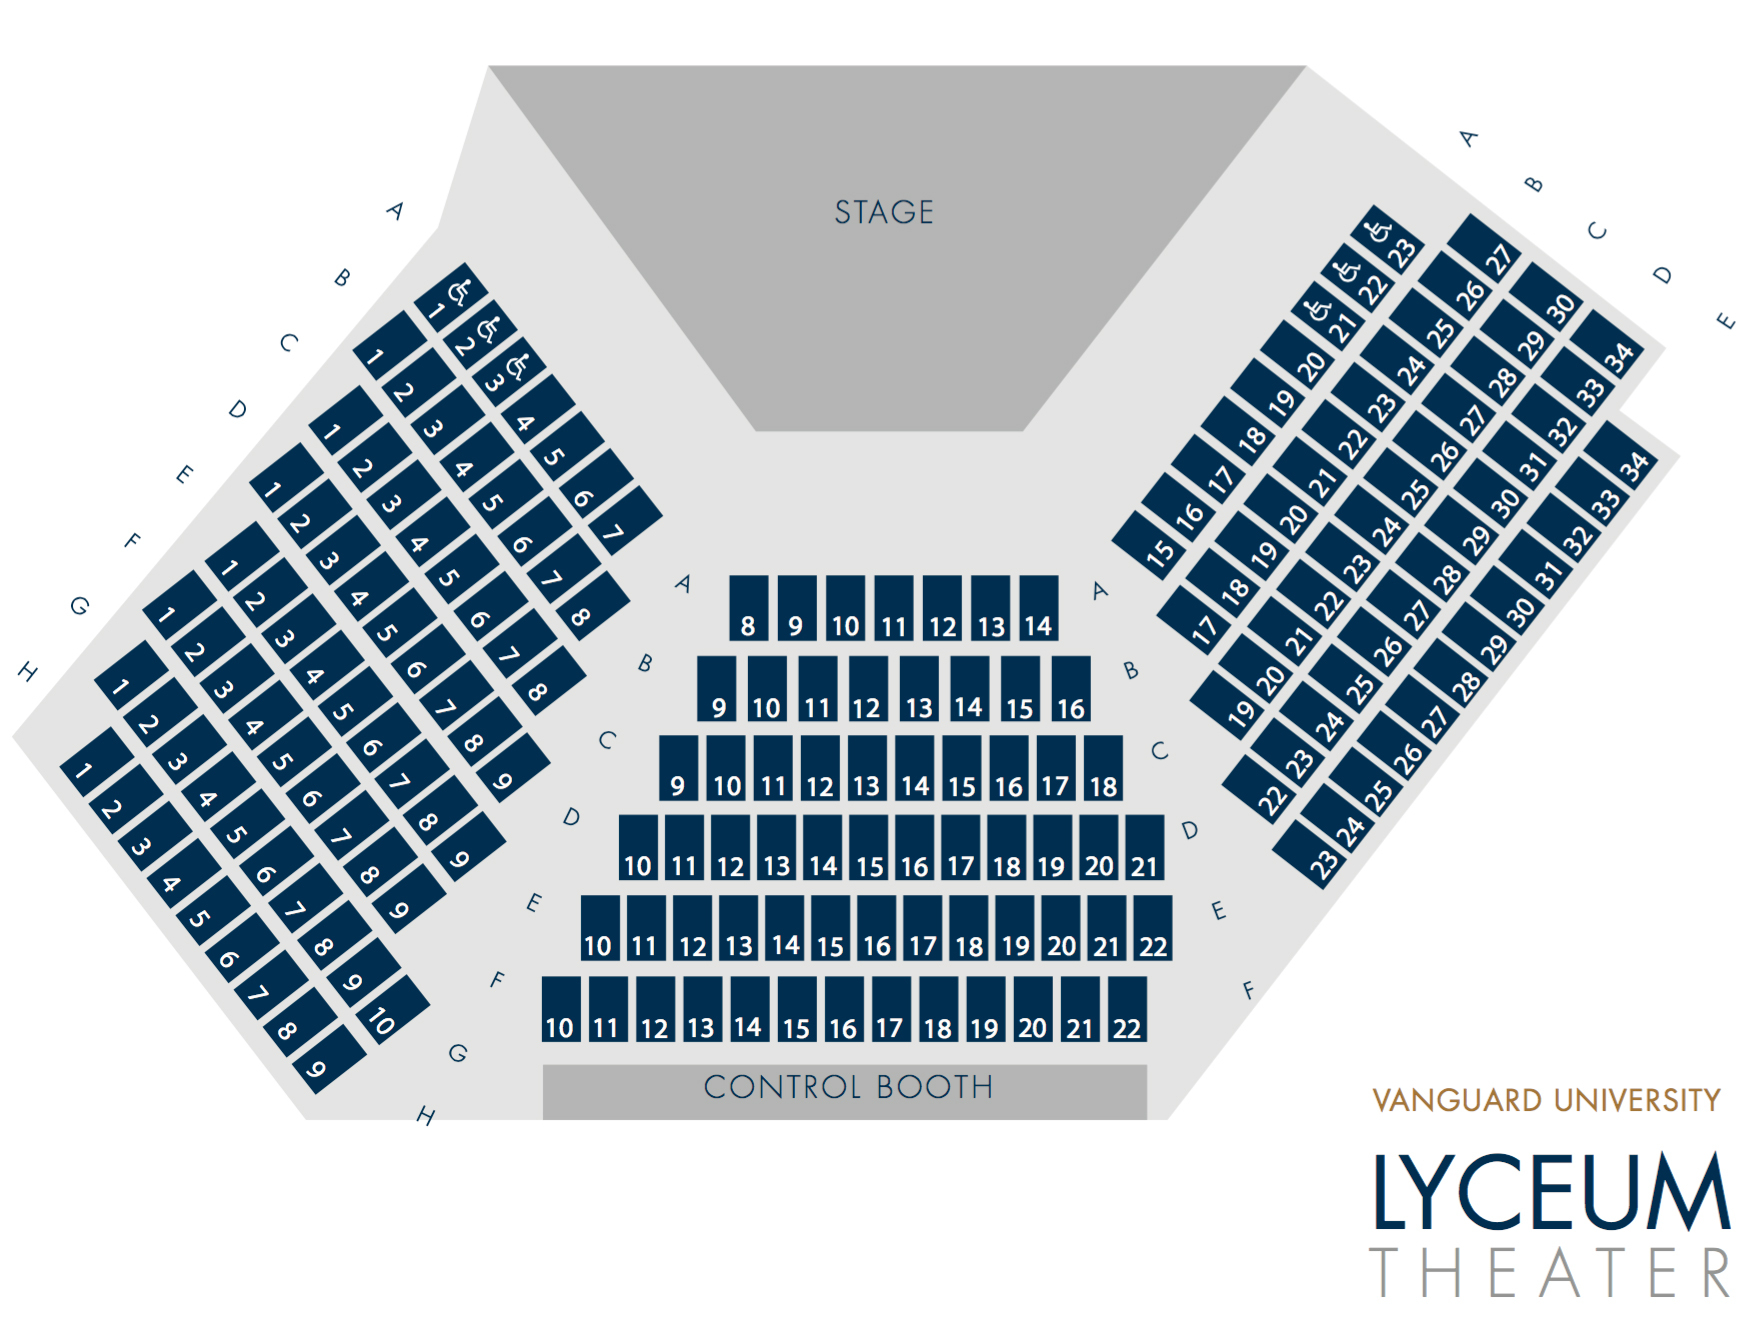 Lyceum Theater Seating Chart